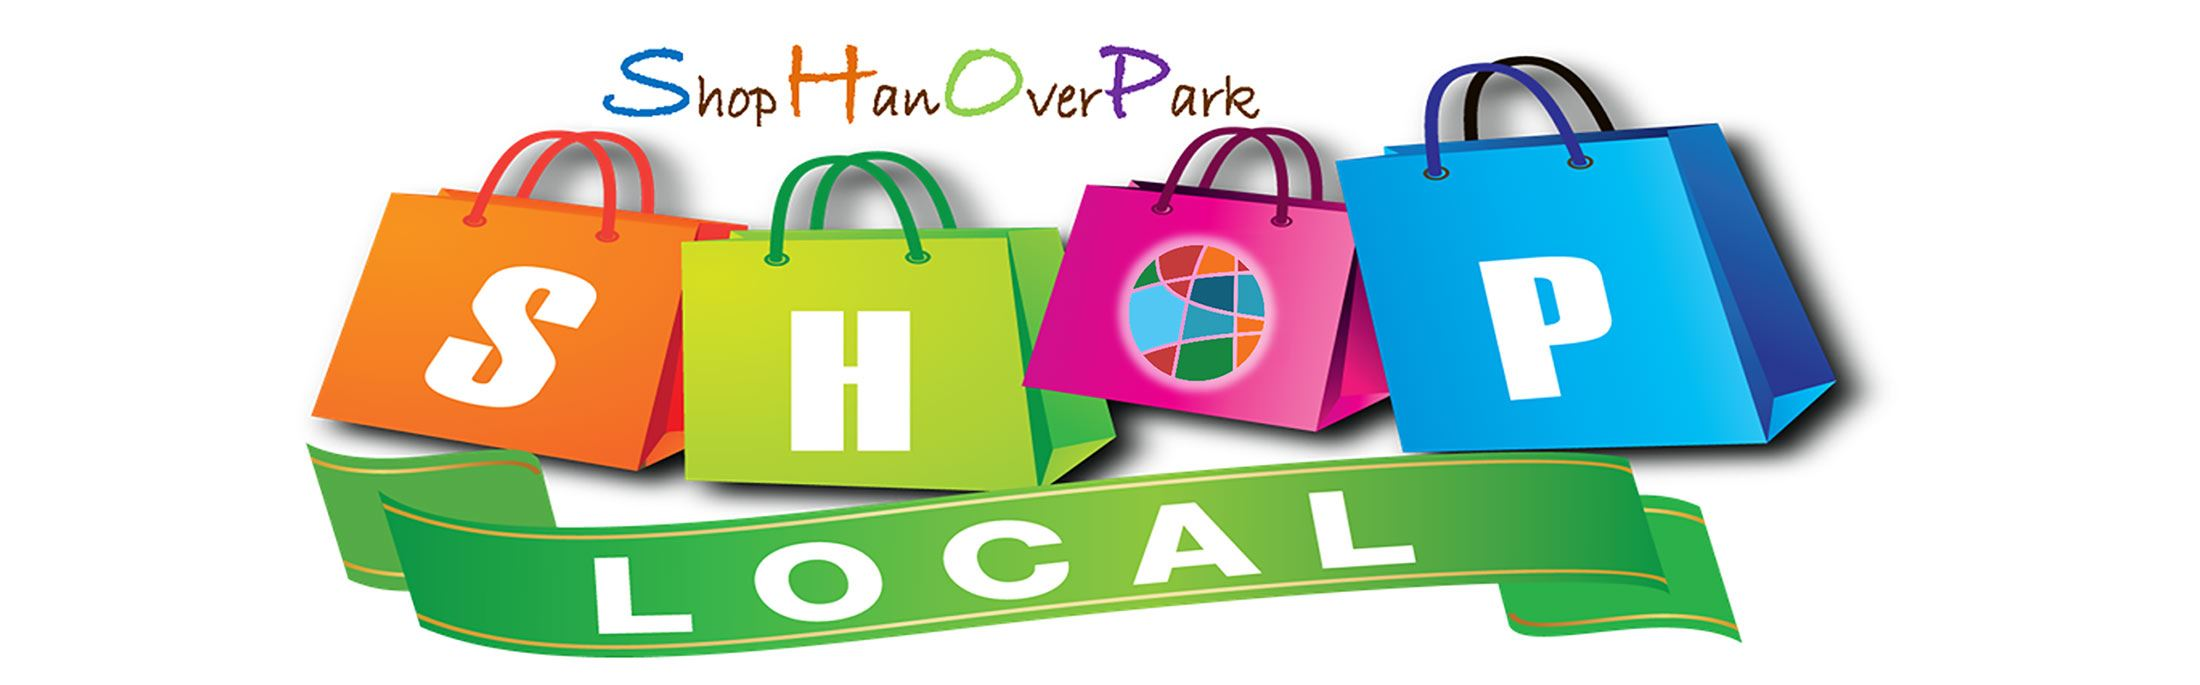 Shop local banner image